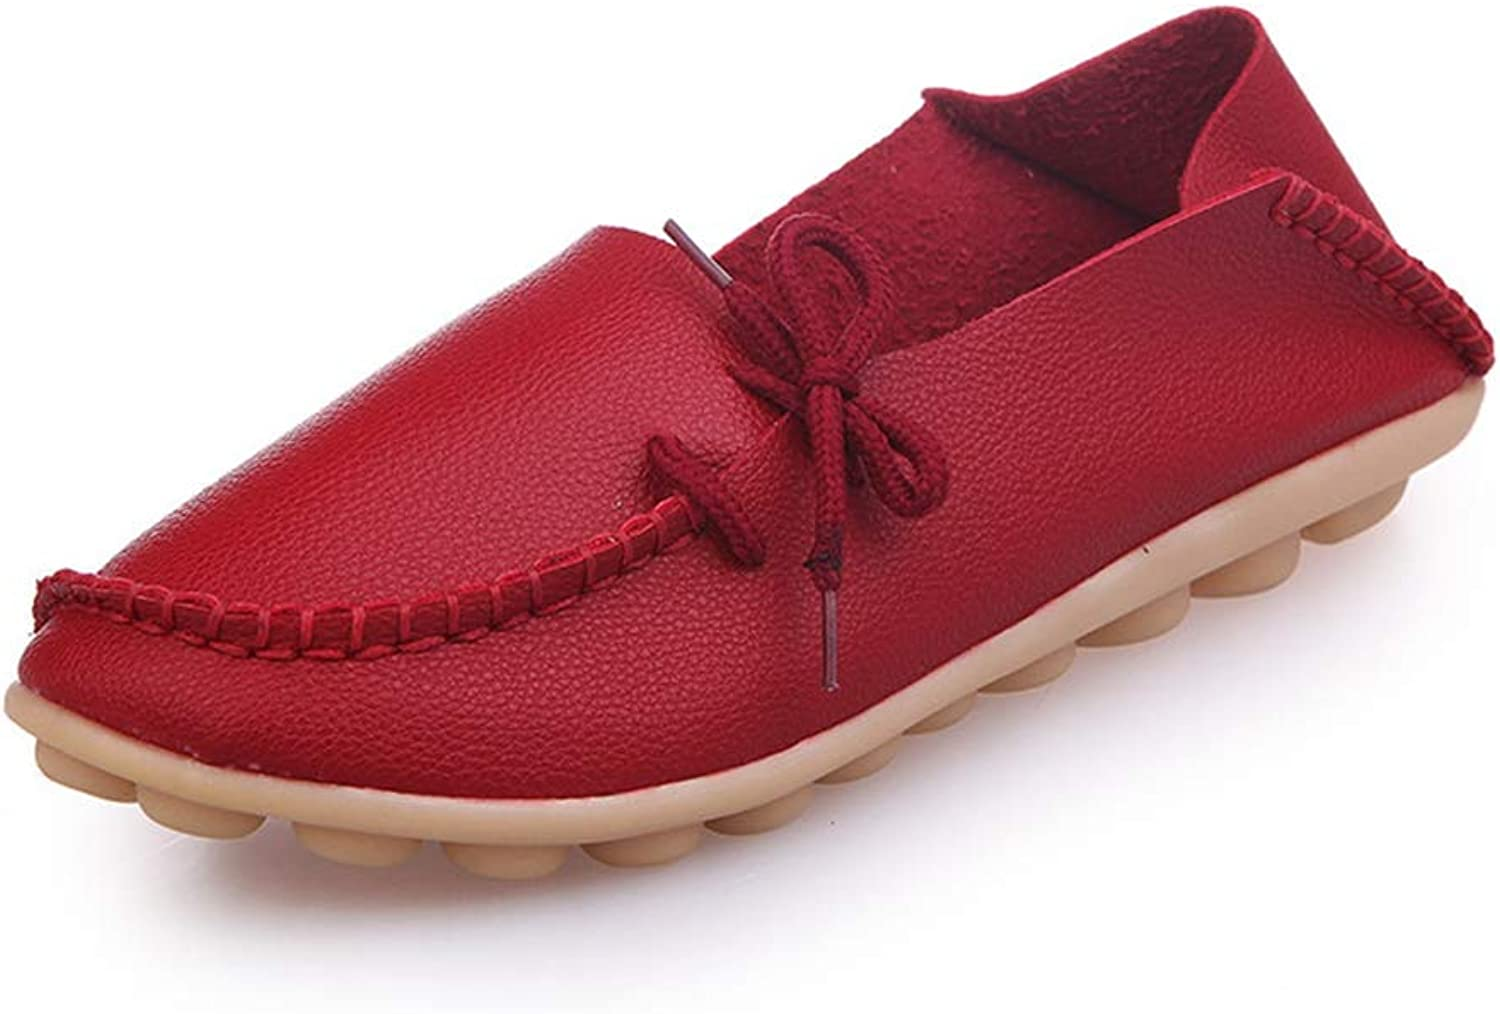 T-JULY Women's Casual Flats shoes Woman Loafers Slip-On Girls Flats Driving shoes Leisure Footwears Peas Loafer Flats shoes